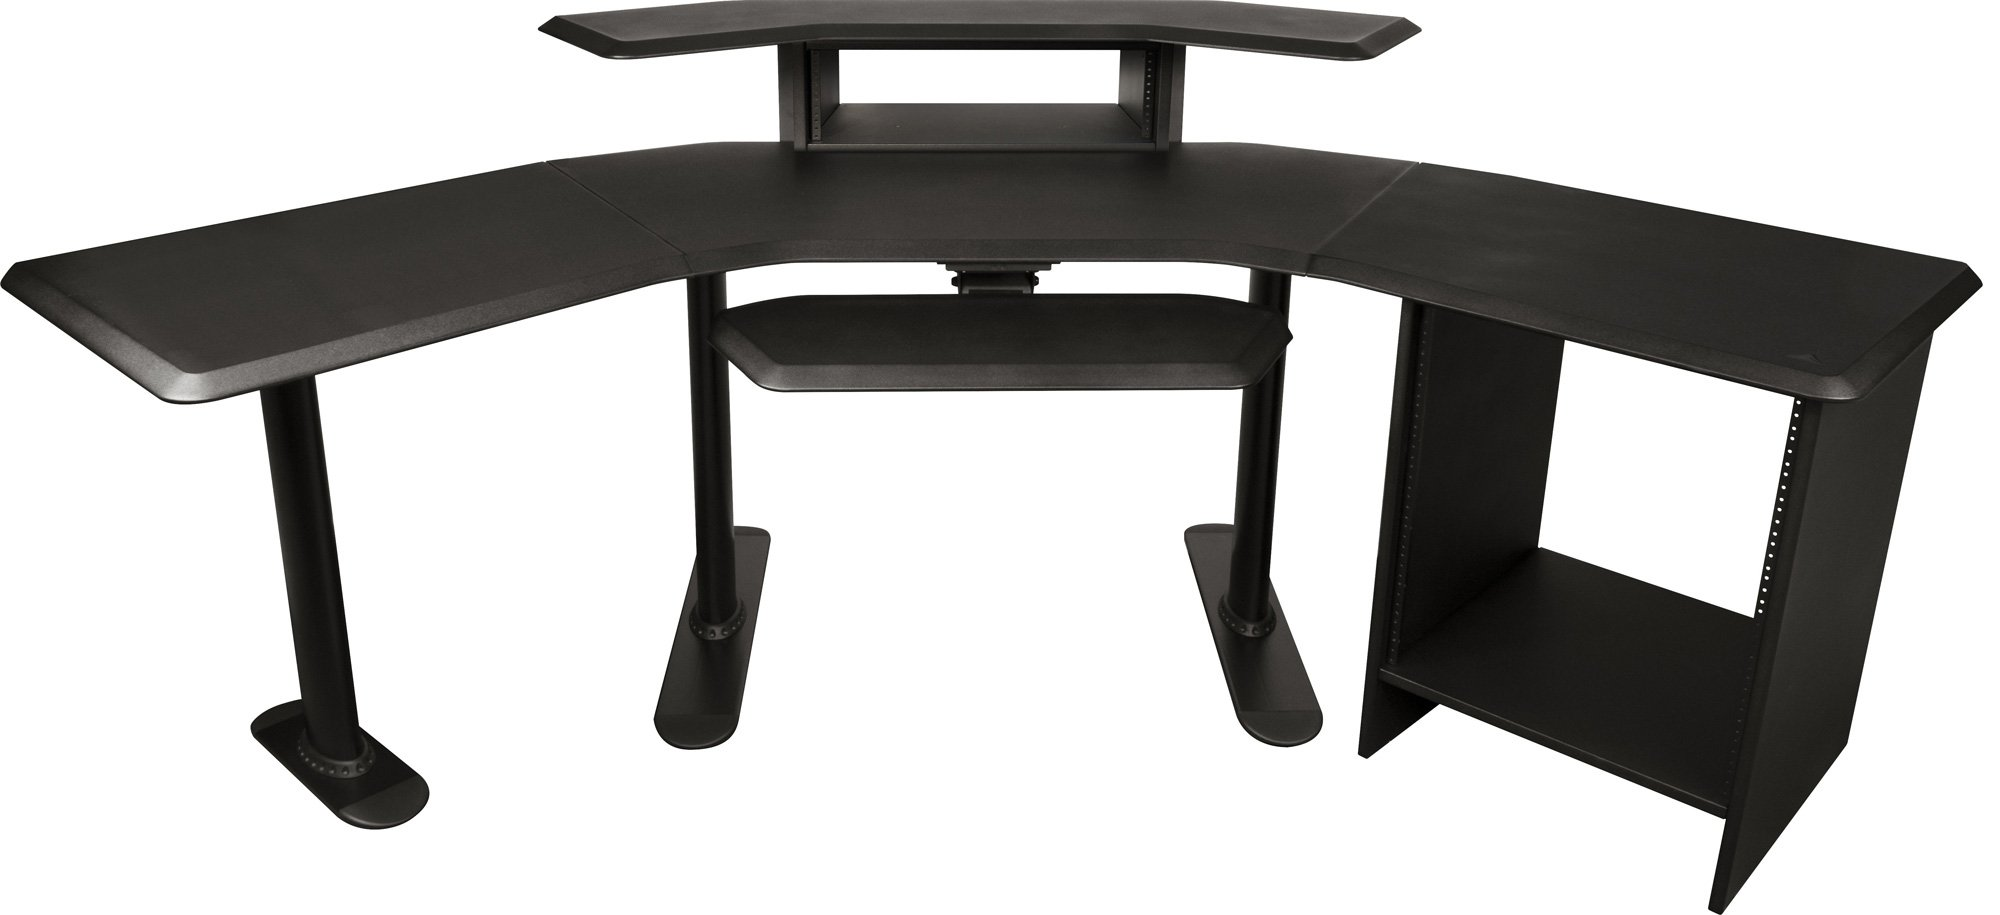 Nuc 004 Nucleus Series Studio Desk With 24 Inch Extension 12 Space Rack 2nd Tier 4